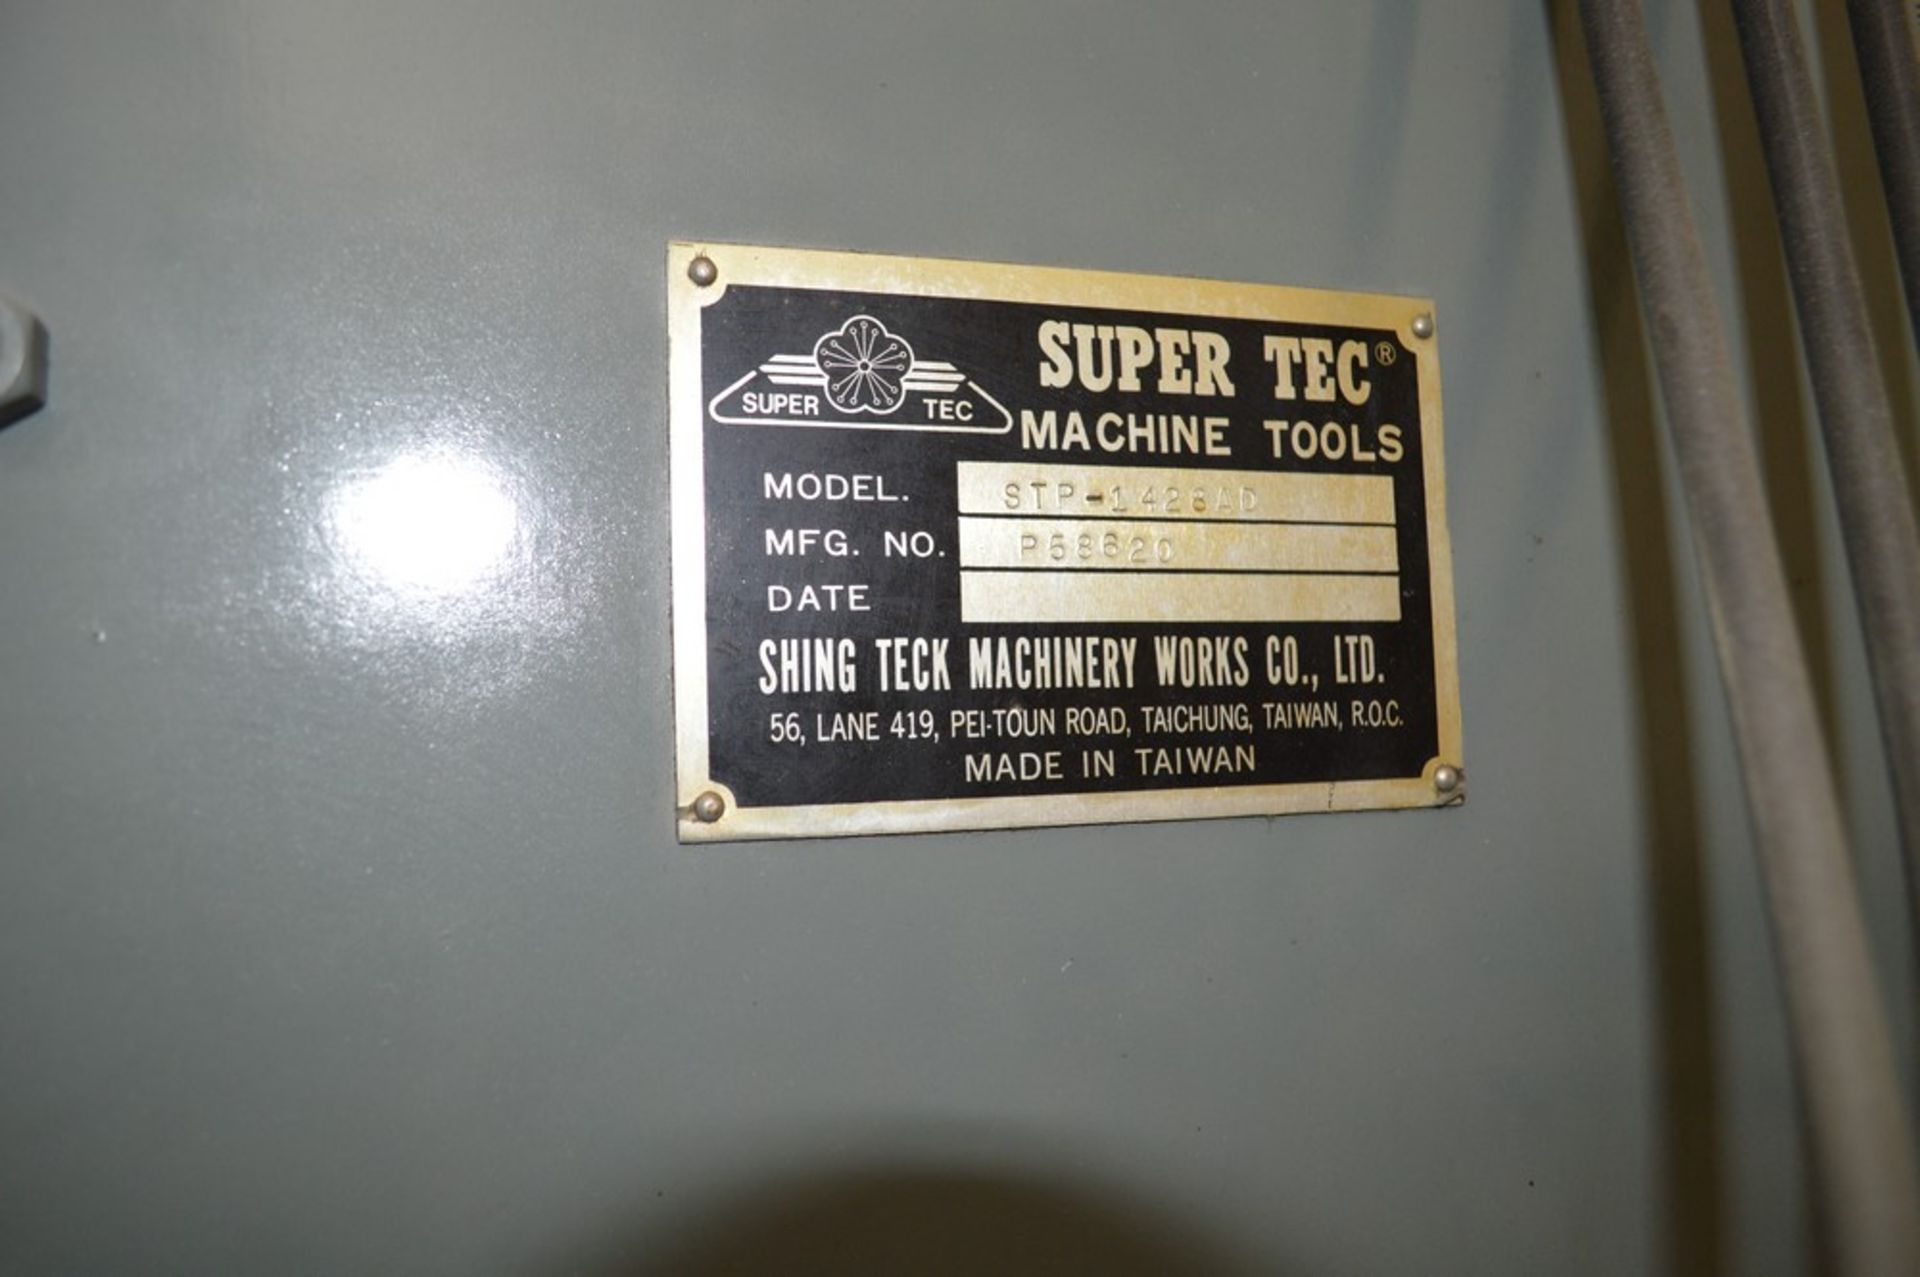 Supertec, STP-H1428 AD Grinder, Full three axis hydraulics, 12 x 27 magnetic chuck - Image 8 of 9